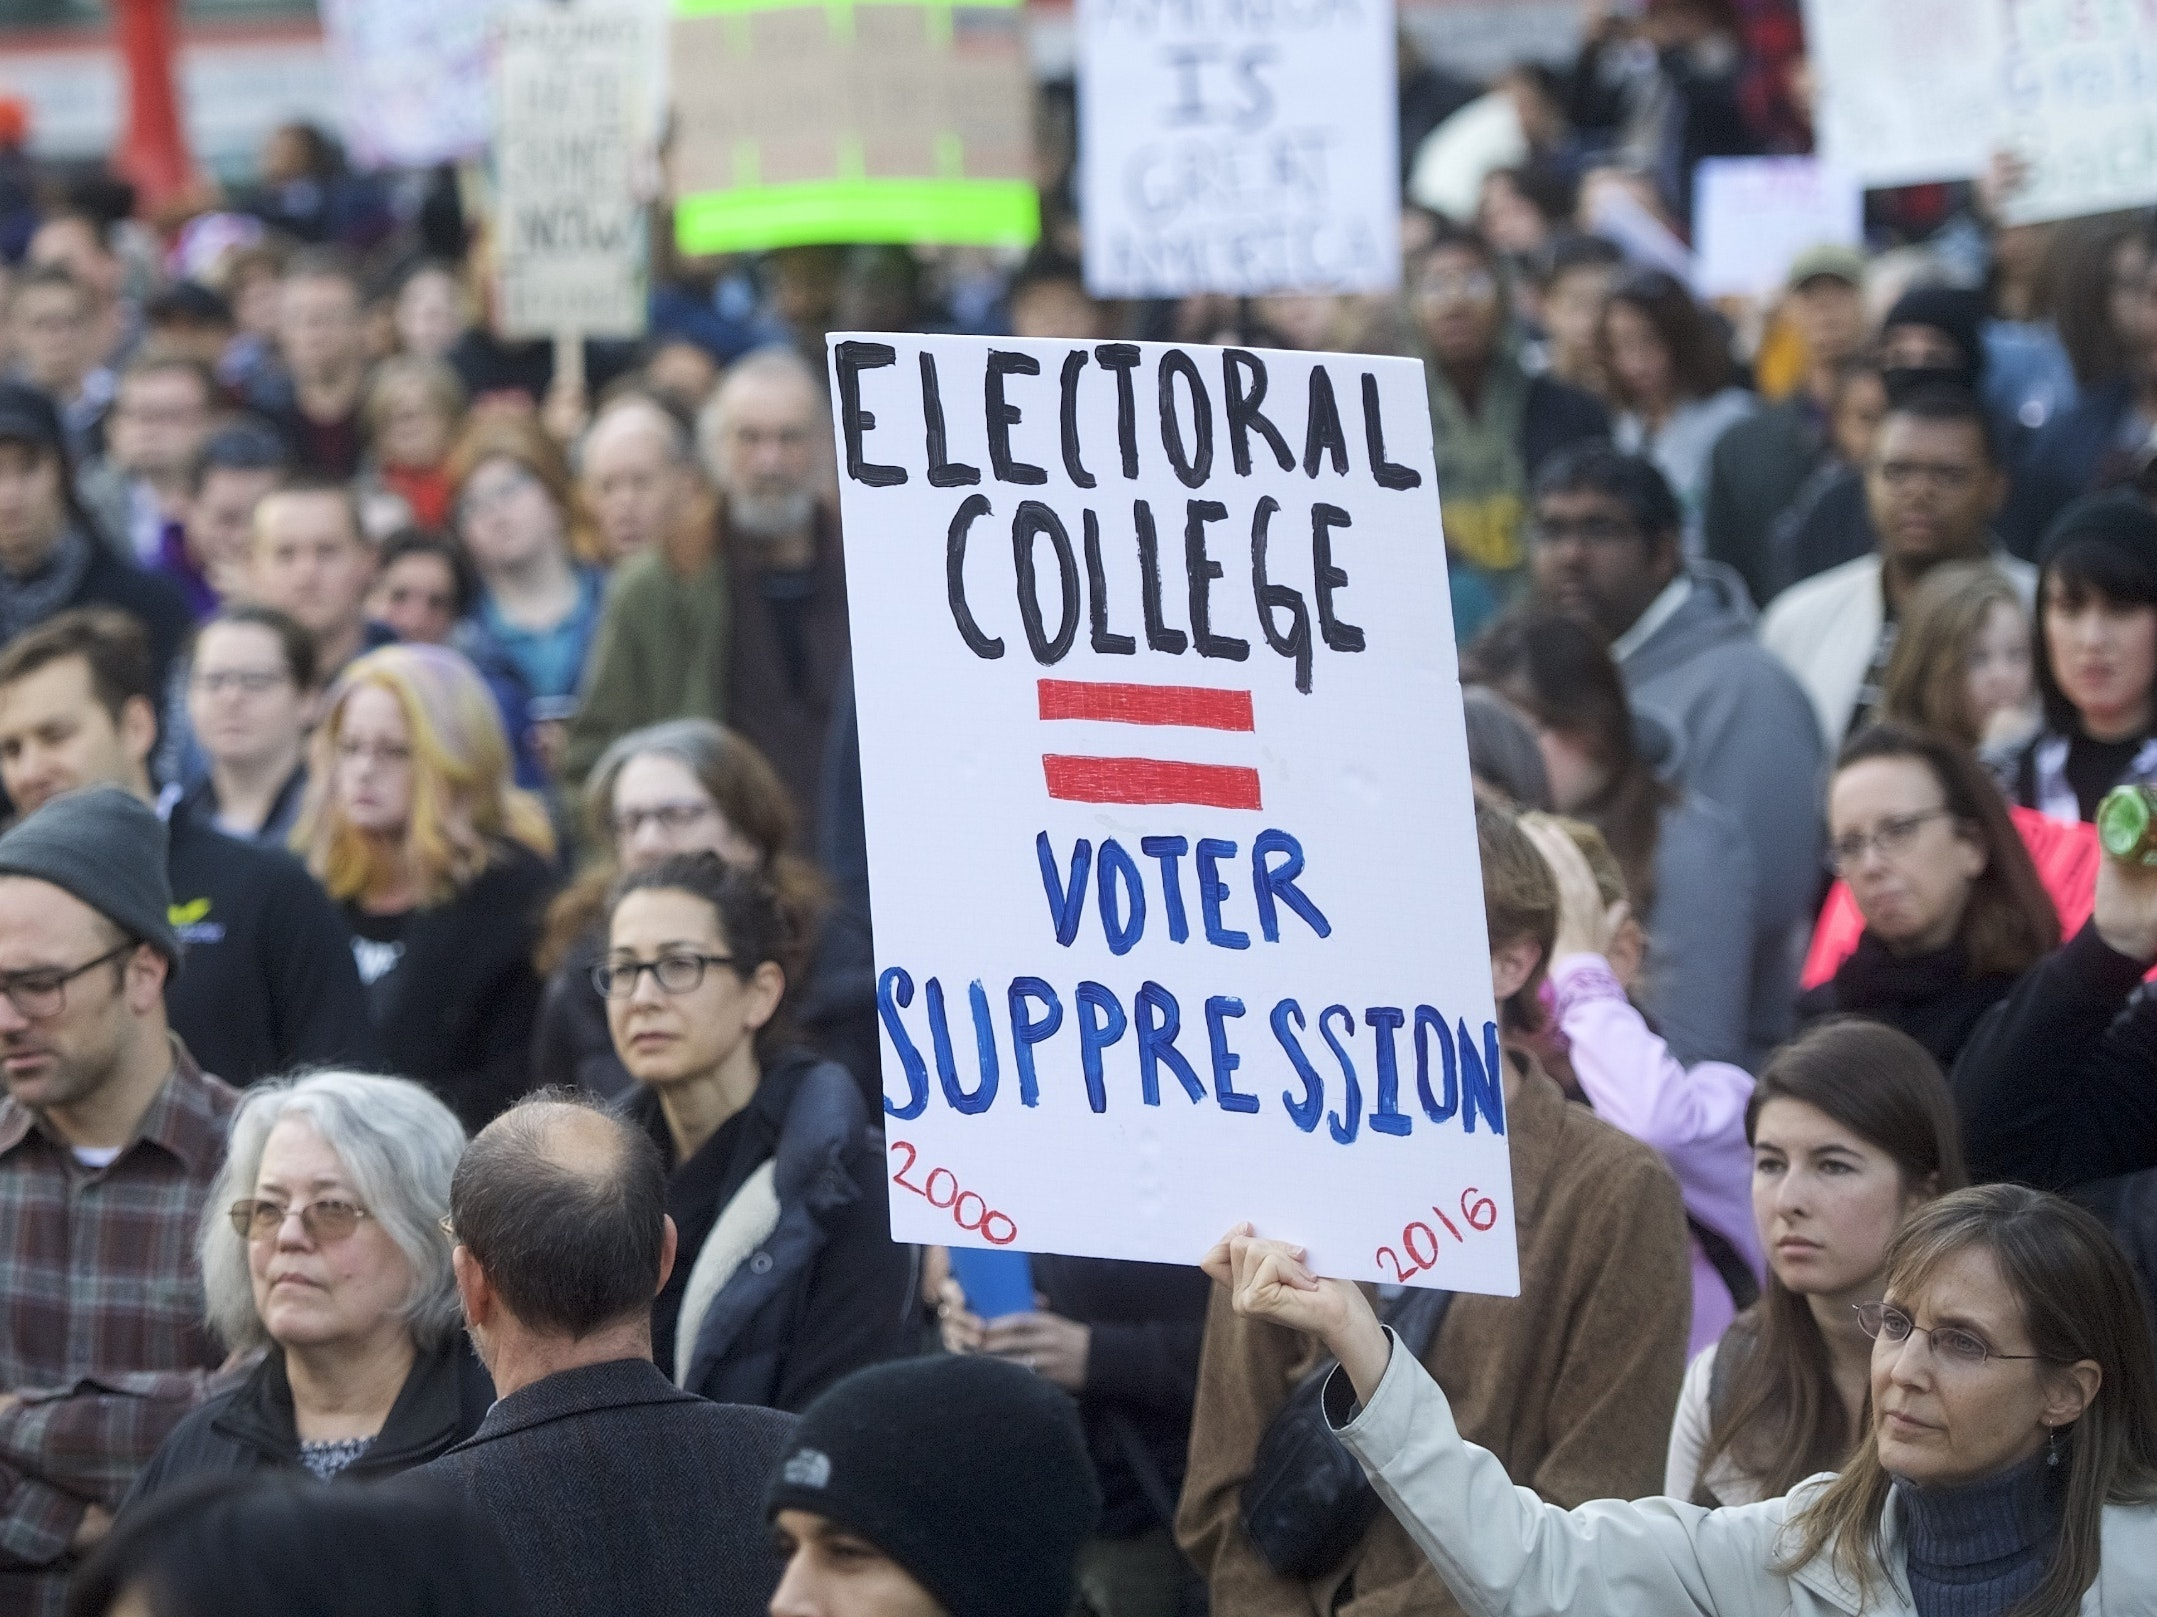 Protestors demonstrate against President-elect Donald Trump November 13, 2016 in Philadelphia, Pennsylvania.  The Republican candidate lost the popular vote by more than a million votes, but won the electoral college.